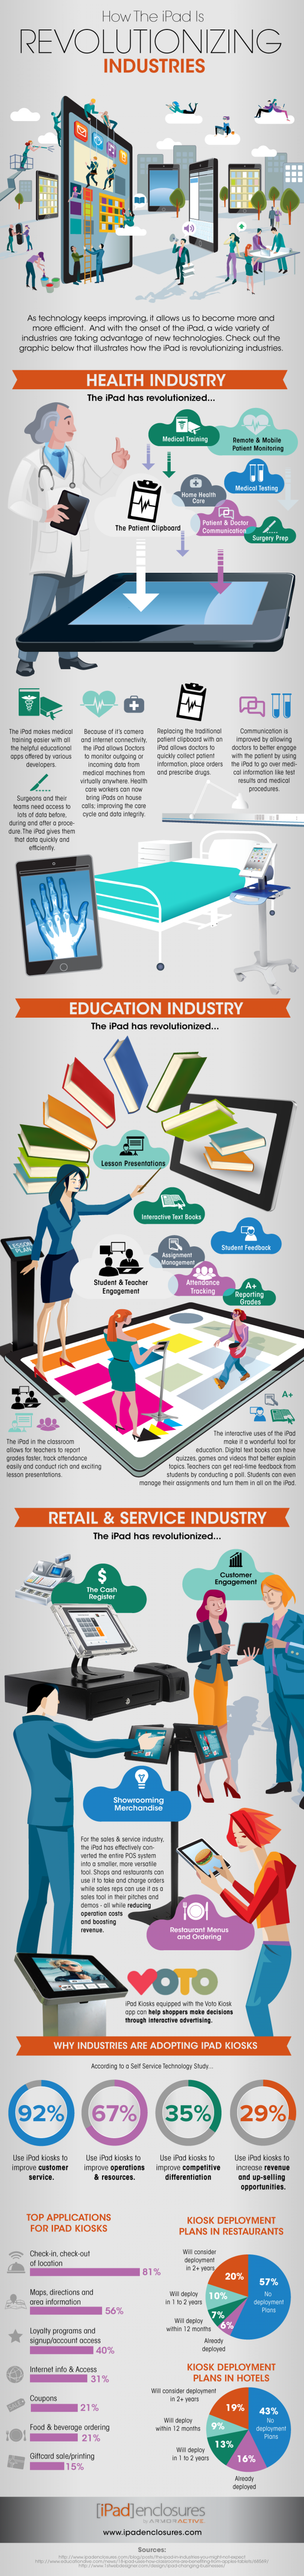 How the iPad is Revolutionizing Industries  Infographic